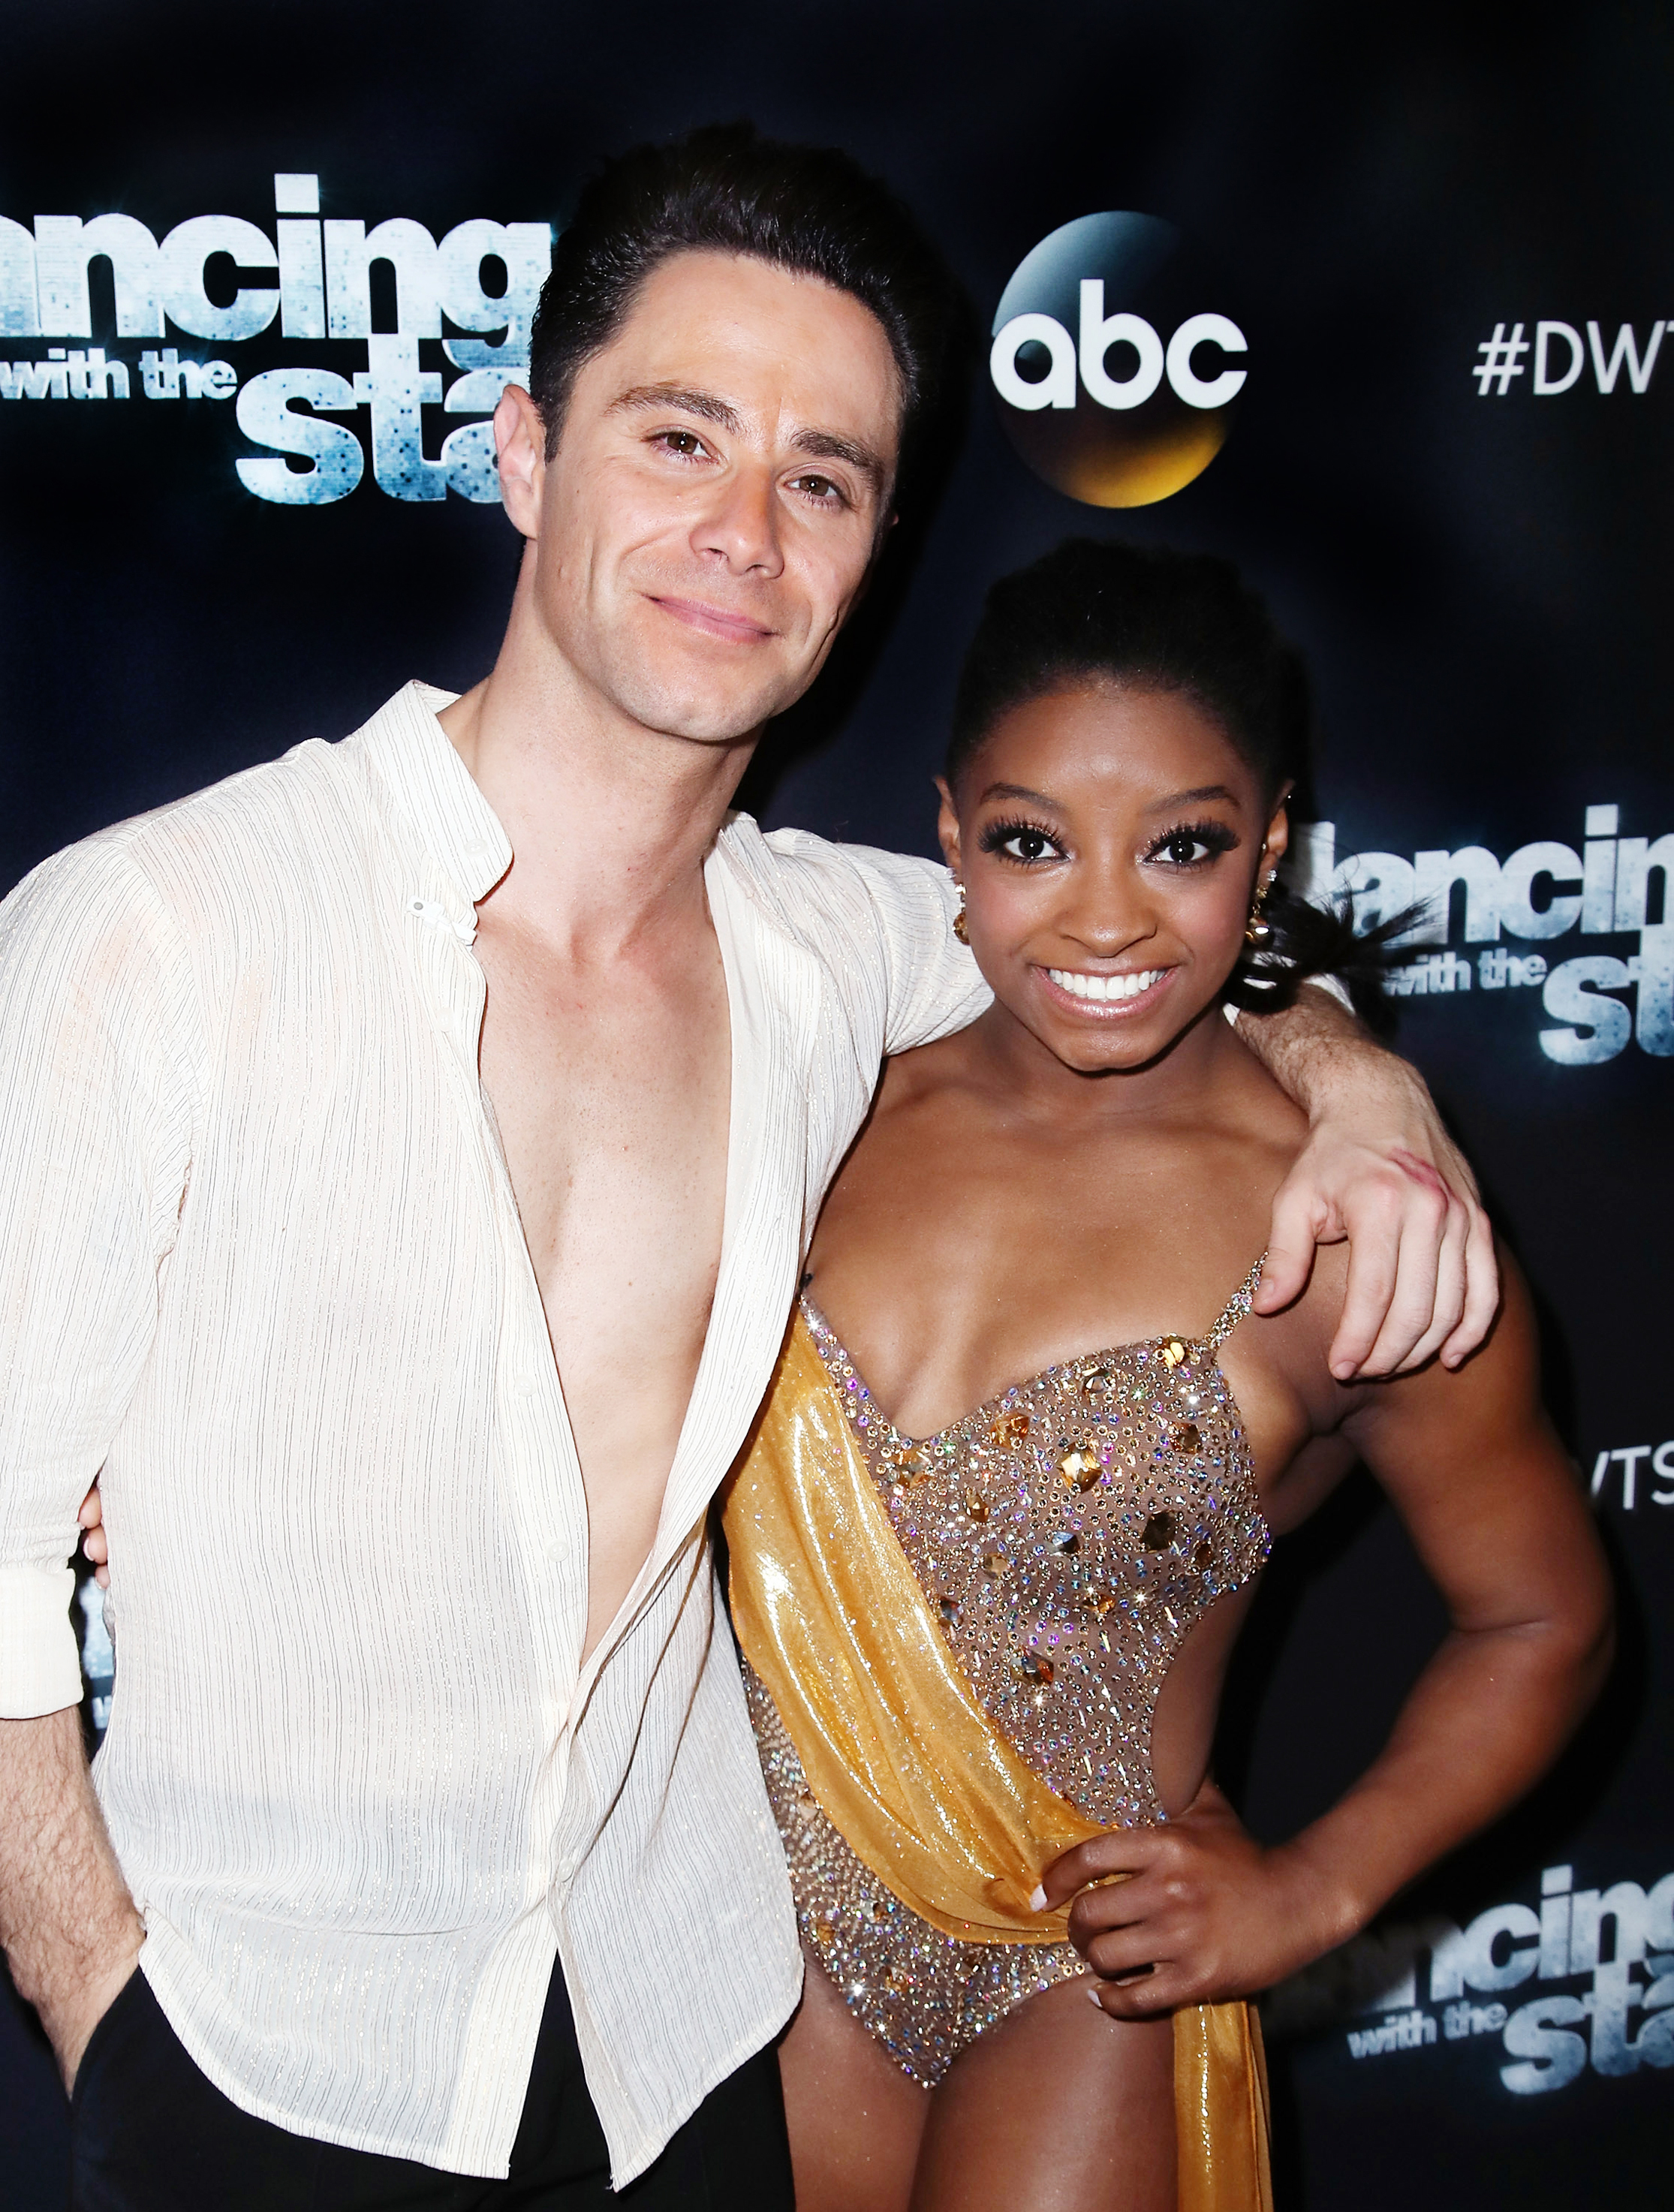 See All the Dazzling Outfits Worn on Last Night's <em>Dancing with the Stars </em>Semi-Finals